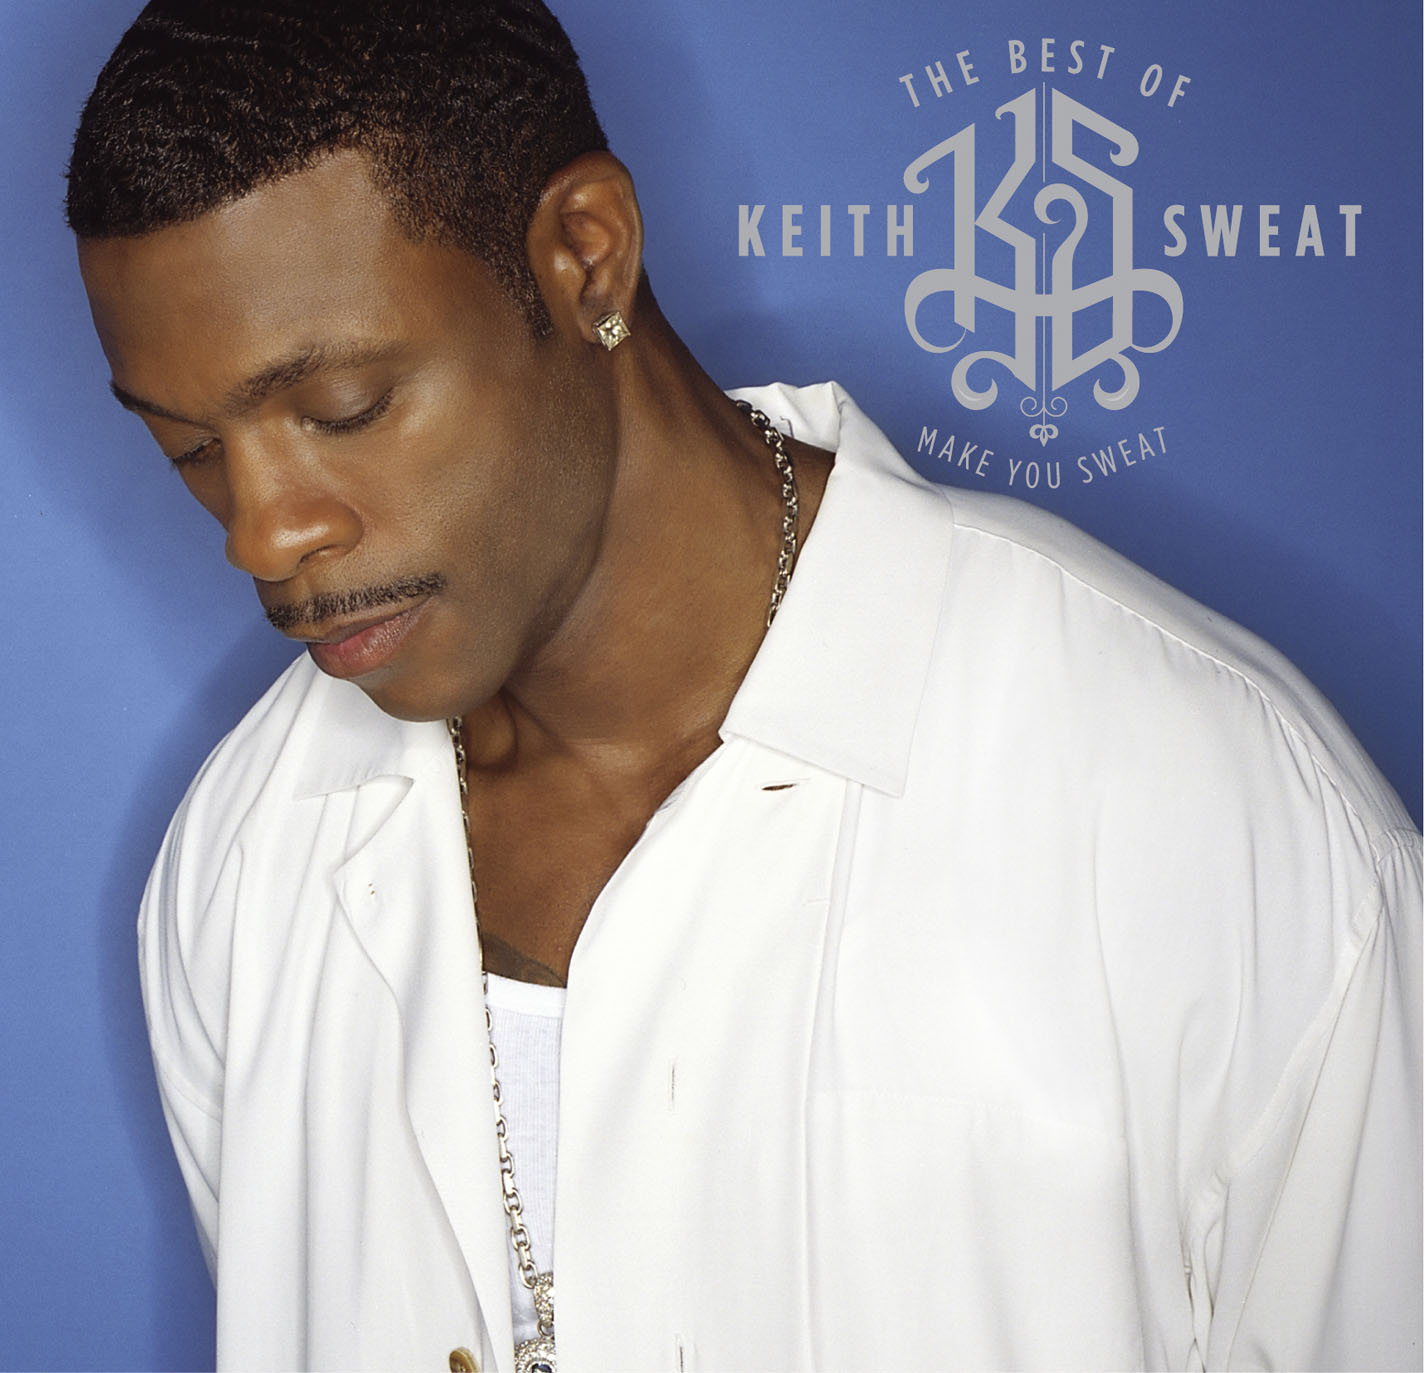 Just wanna sex you-keith sweat